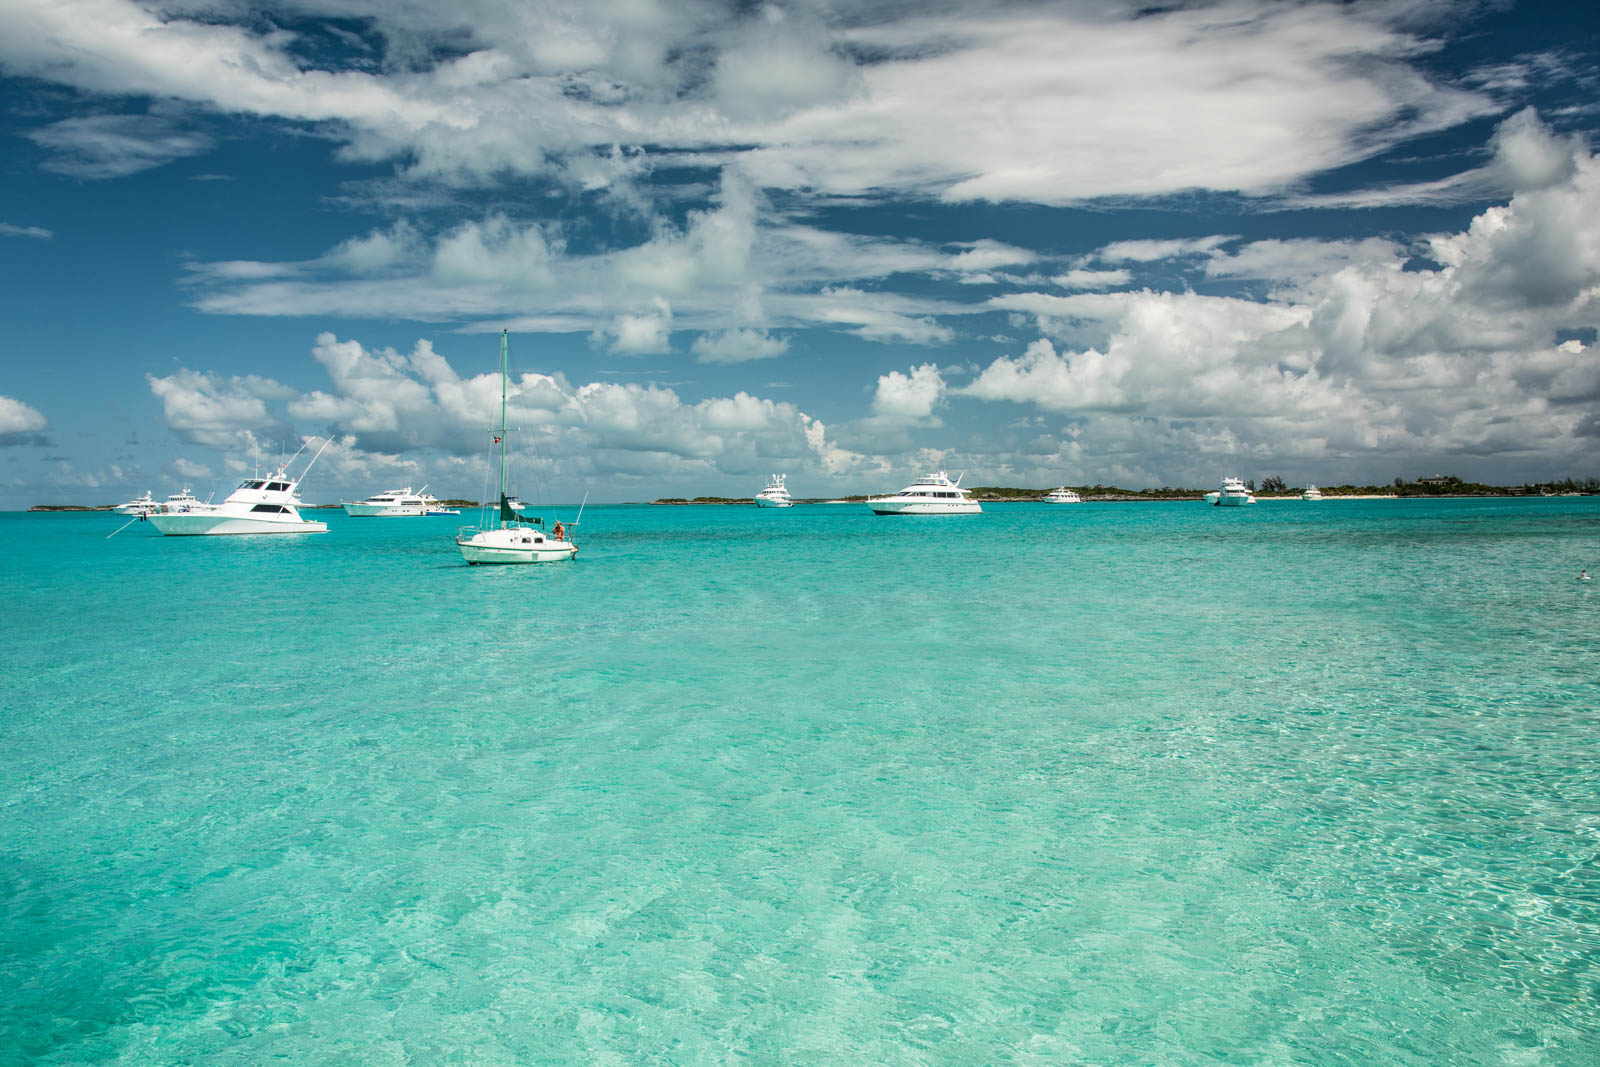 The views are incredible in the Exuma Cays. The Swimming Pigs Exuma attraction is not the only thing to experience in this Bahamas day trip fairytale.